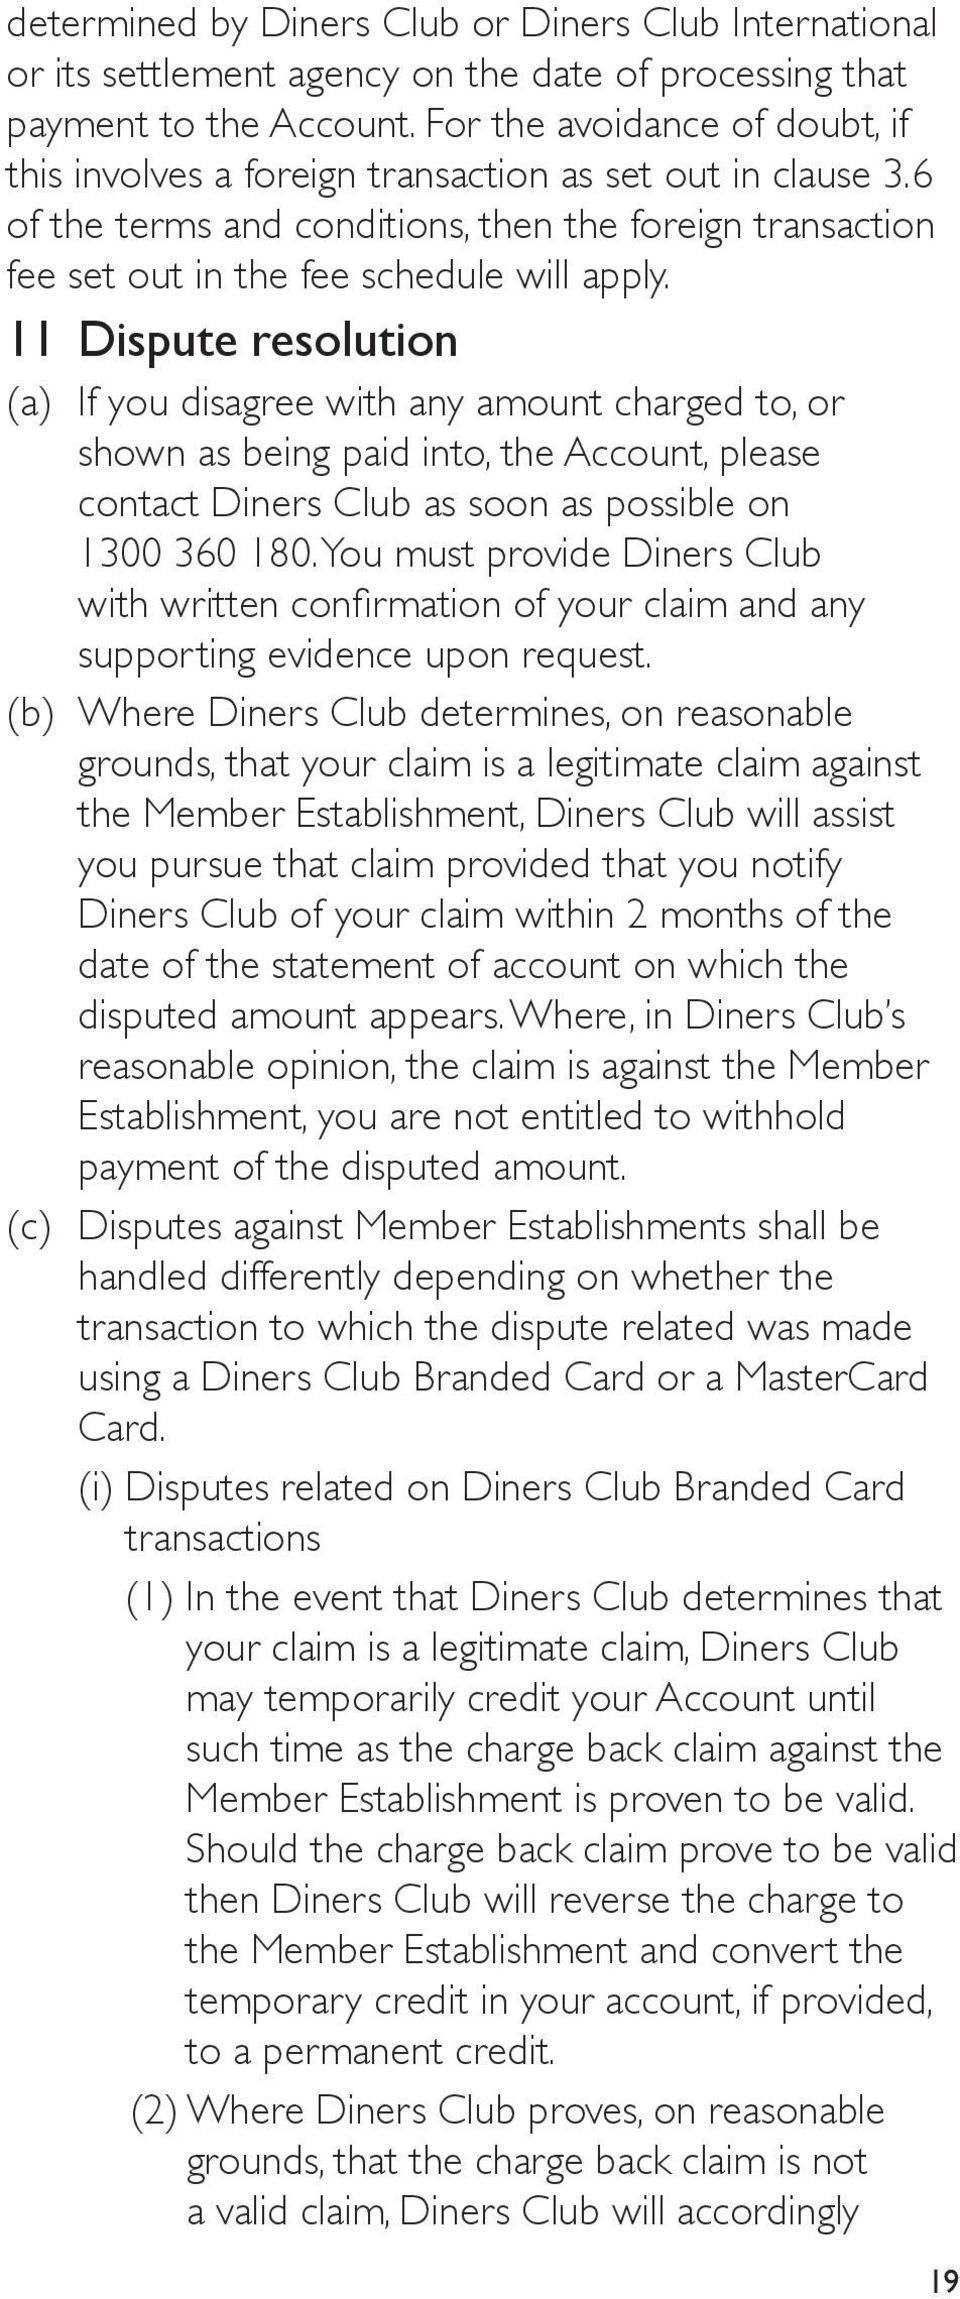 11 Dispute resolution (a) If you disagree with any amount charged to, or shown as being paid into, the Account, please contact Diners Club as soon as possible on 1300 360 180.